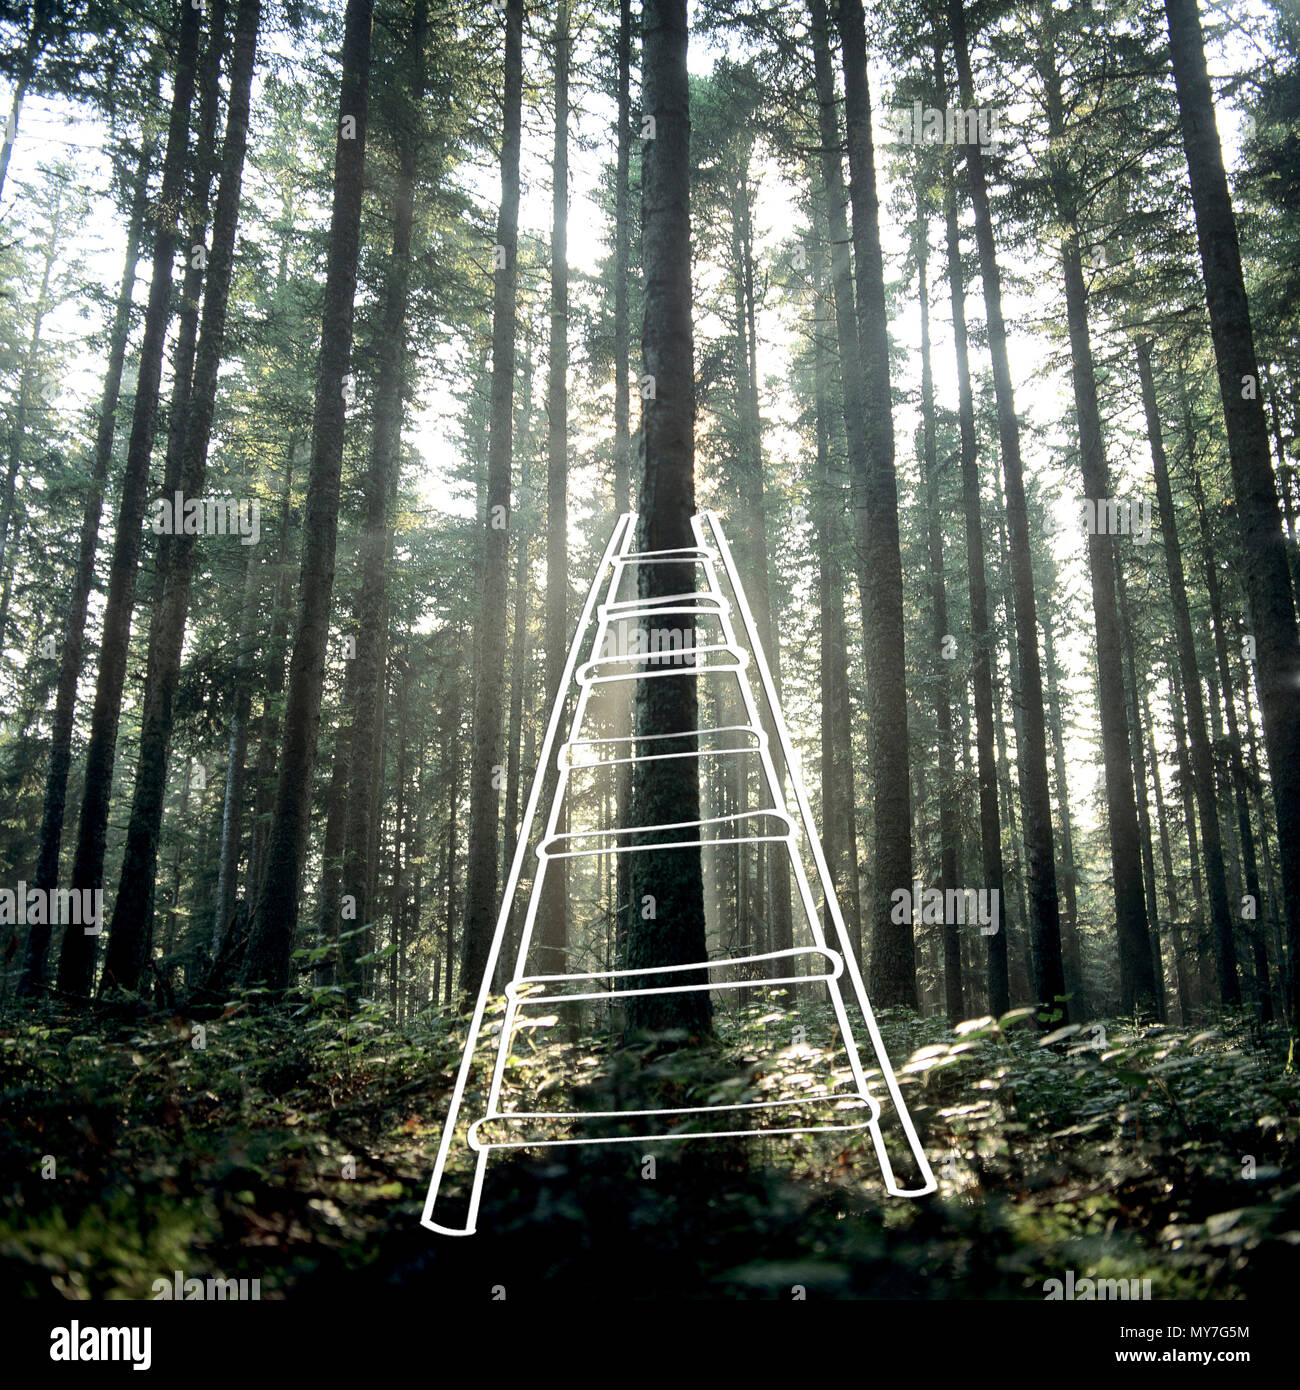 Ladder representation in a forest, France - Stock Image